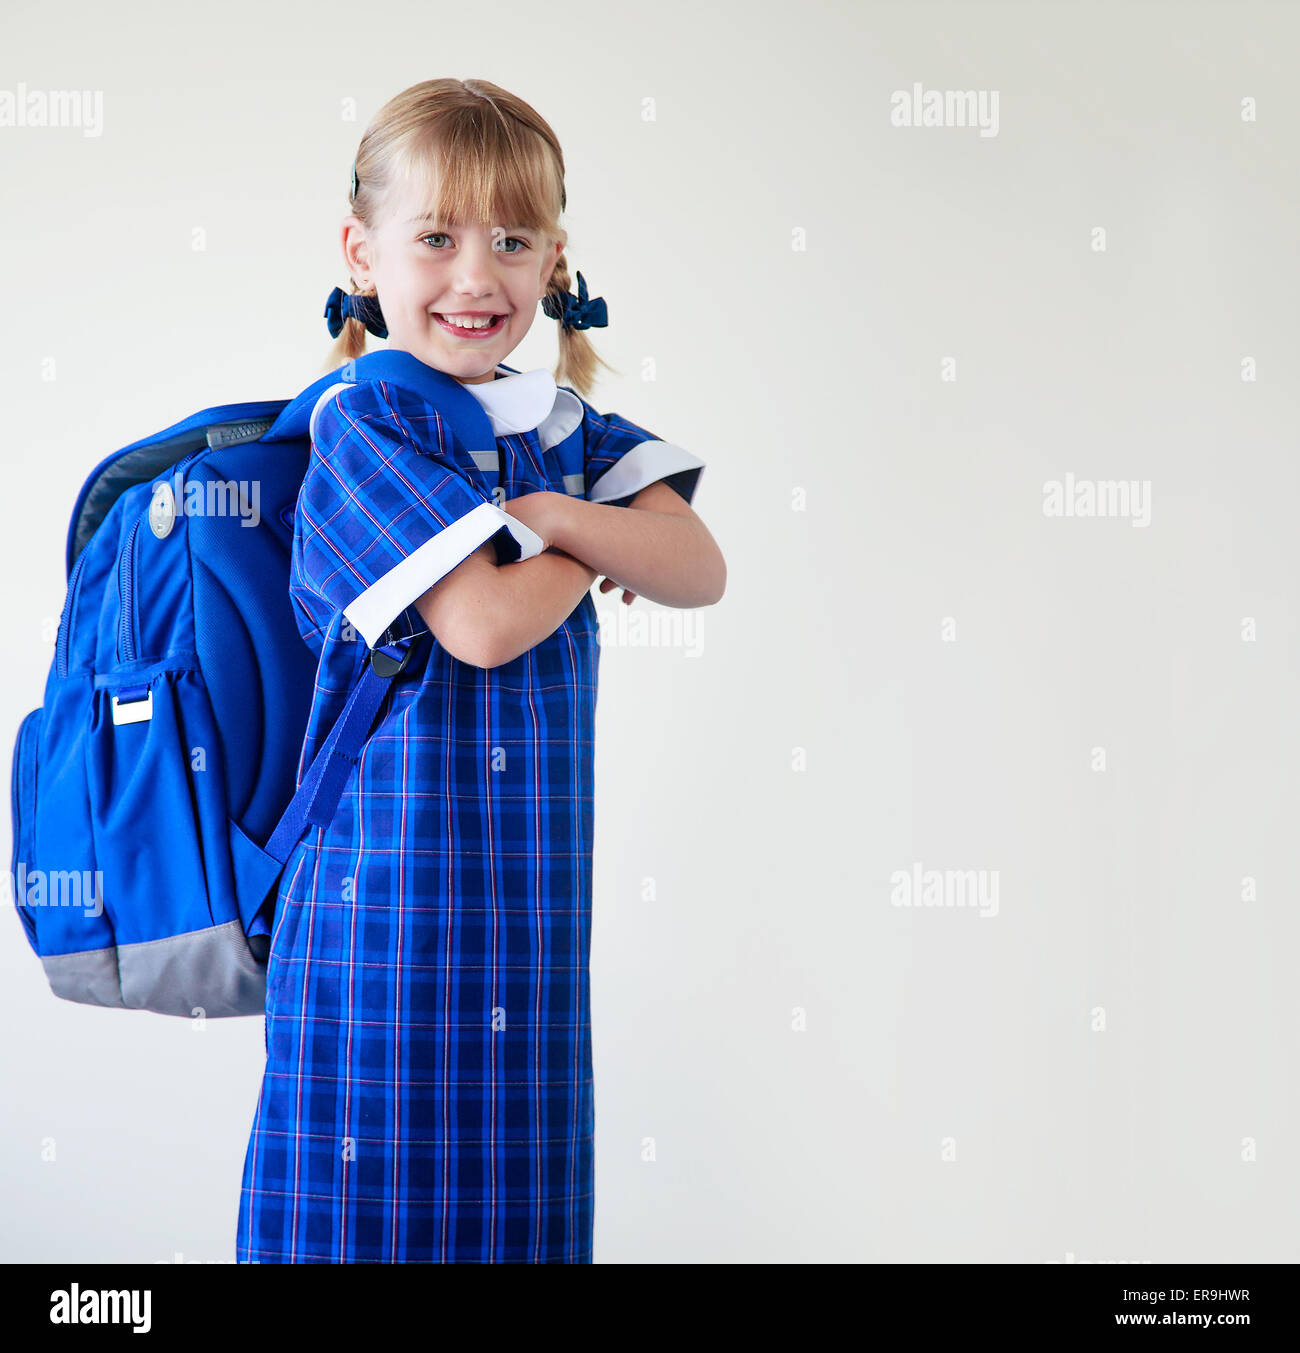 Little girl dressed in her school uniform and backpack ready to go to school - Stock Image